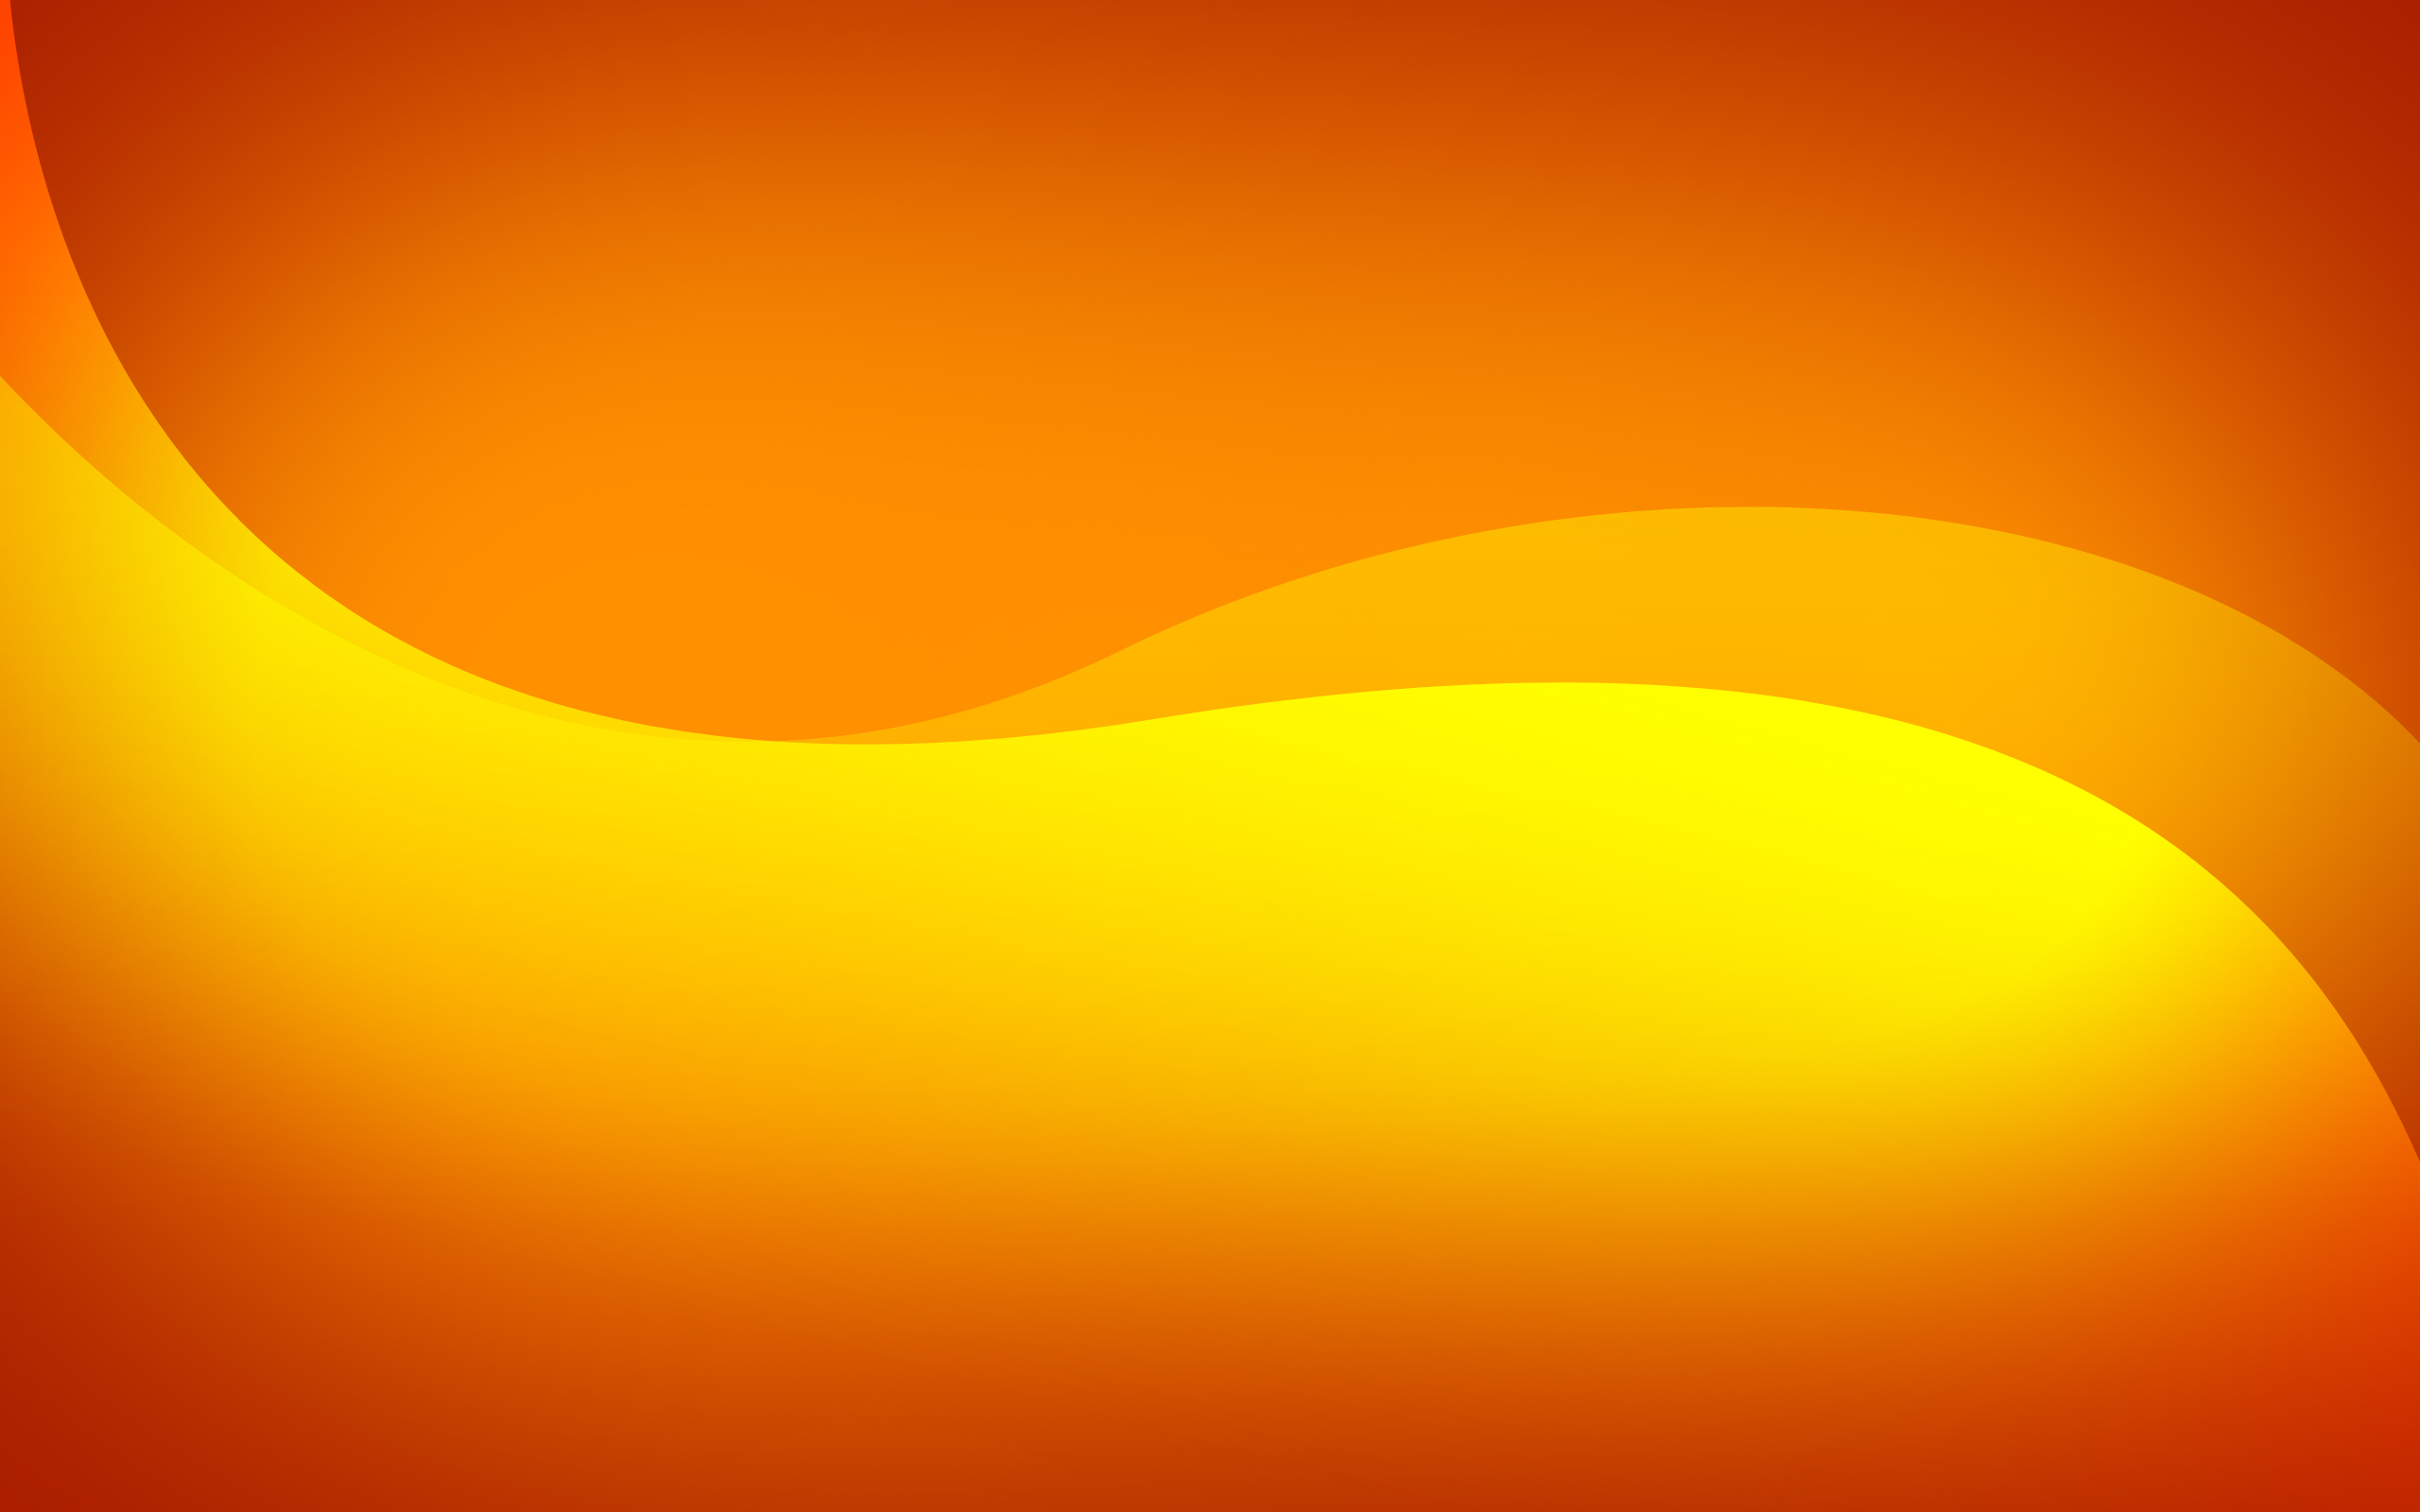 Orange Full HD Wallpaper and Background 2560x1600 ID117330